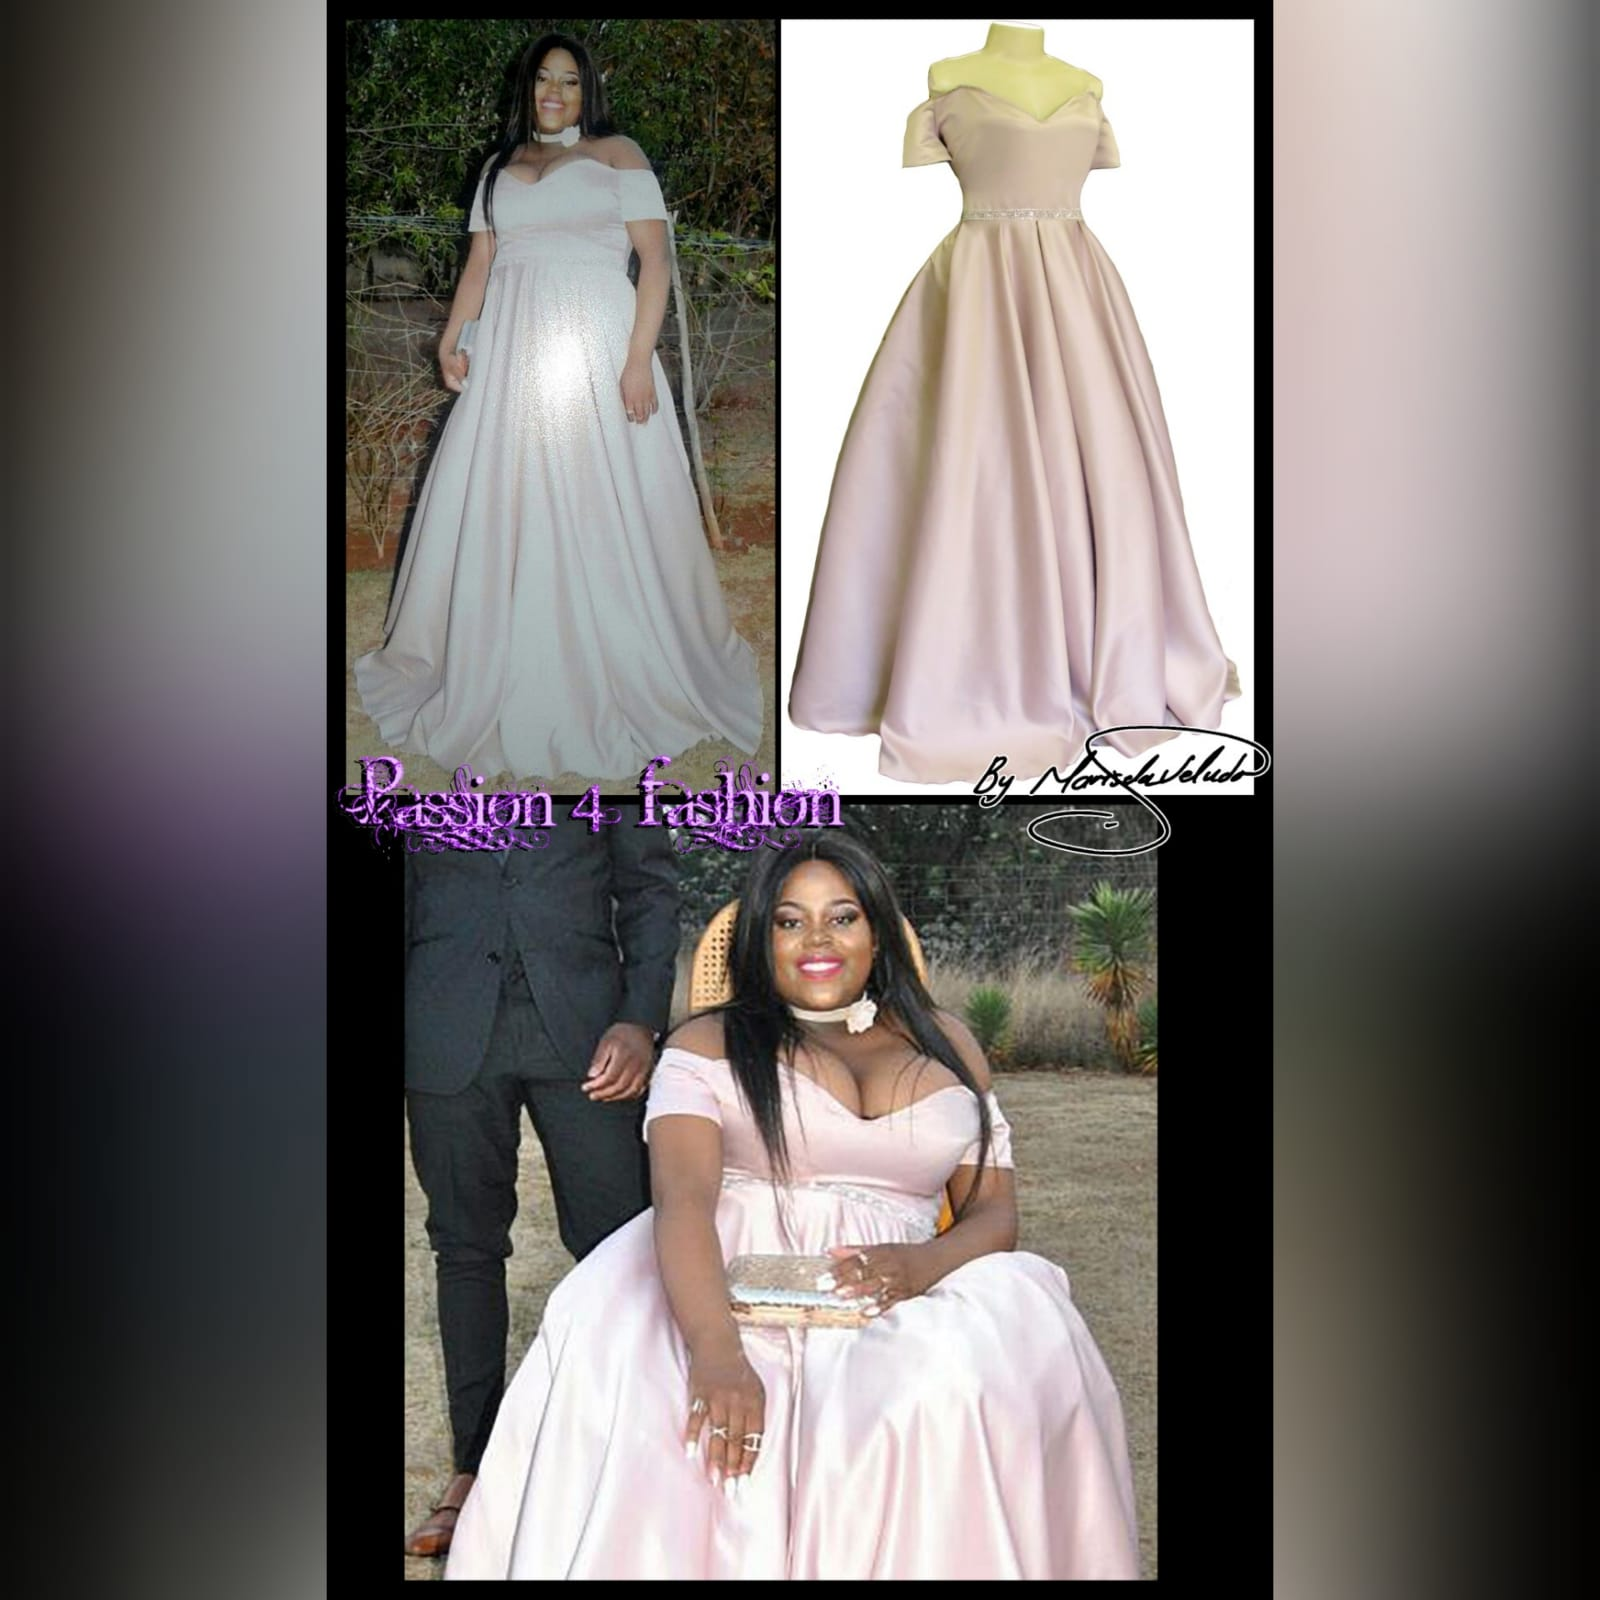 Pale pink satin plus size ceremony dress 4 pale pink satin plus size ceremony dress. Off shoulder, with a sweetheart neckline and off shoulder short sleeves. With a beaded waistline belt effect.